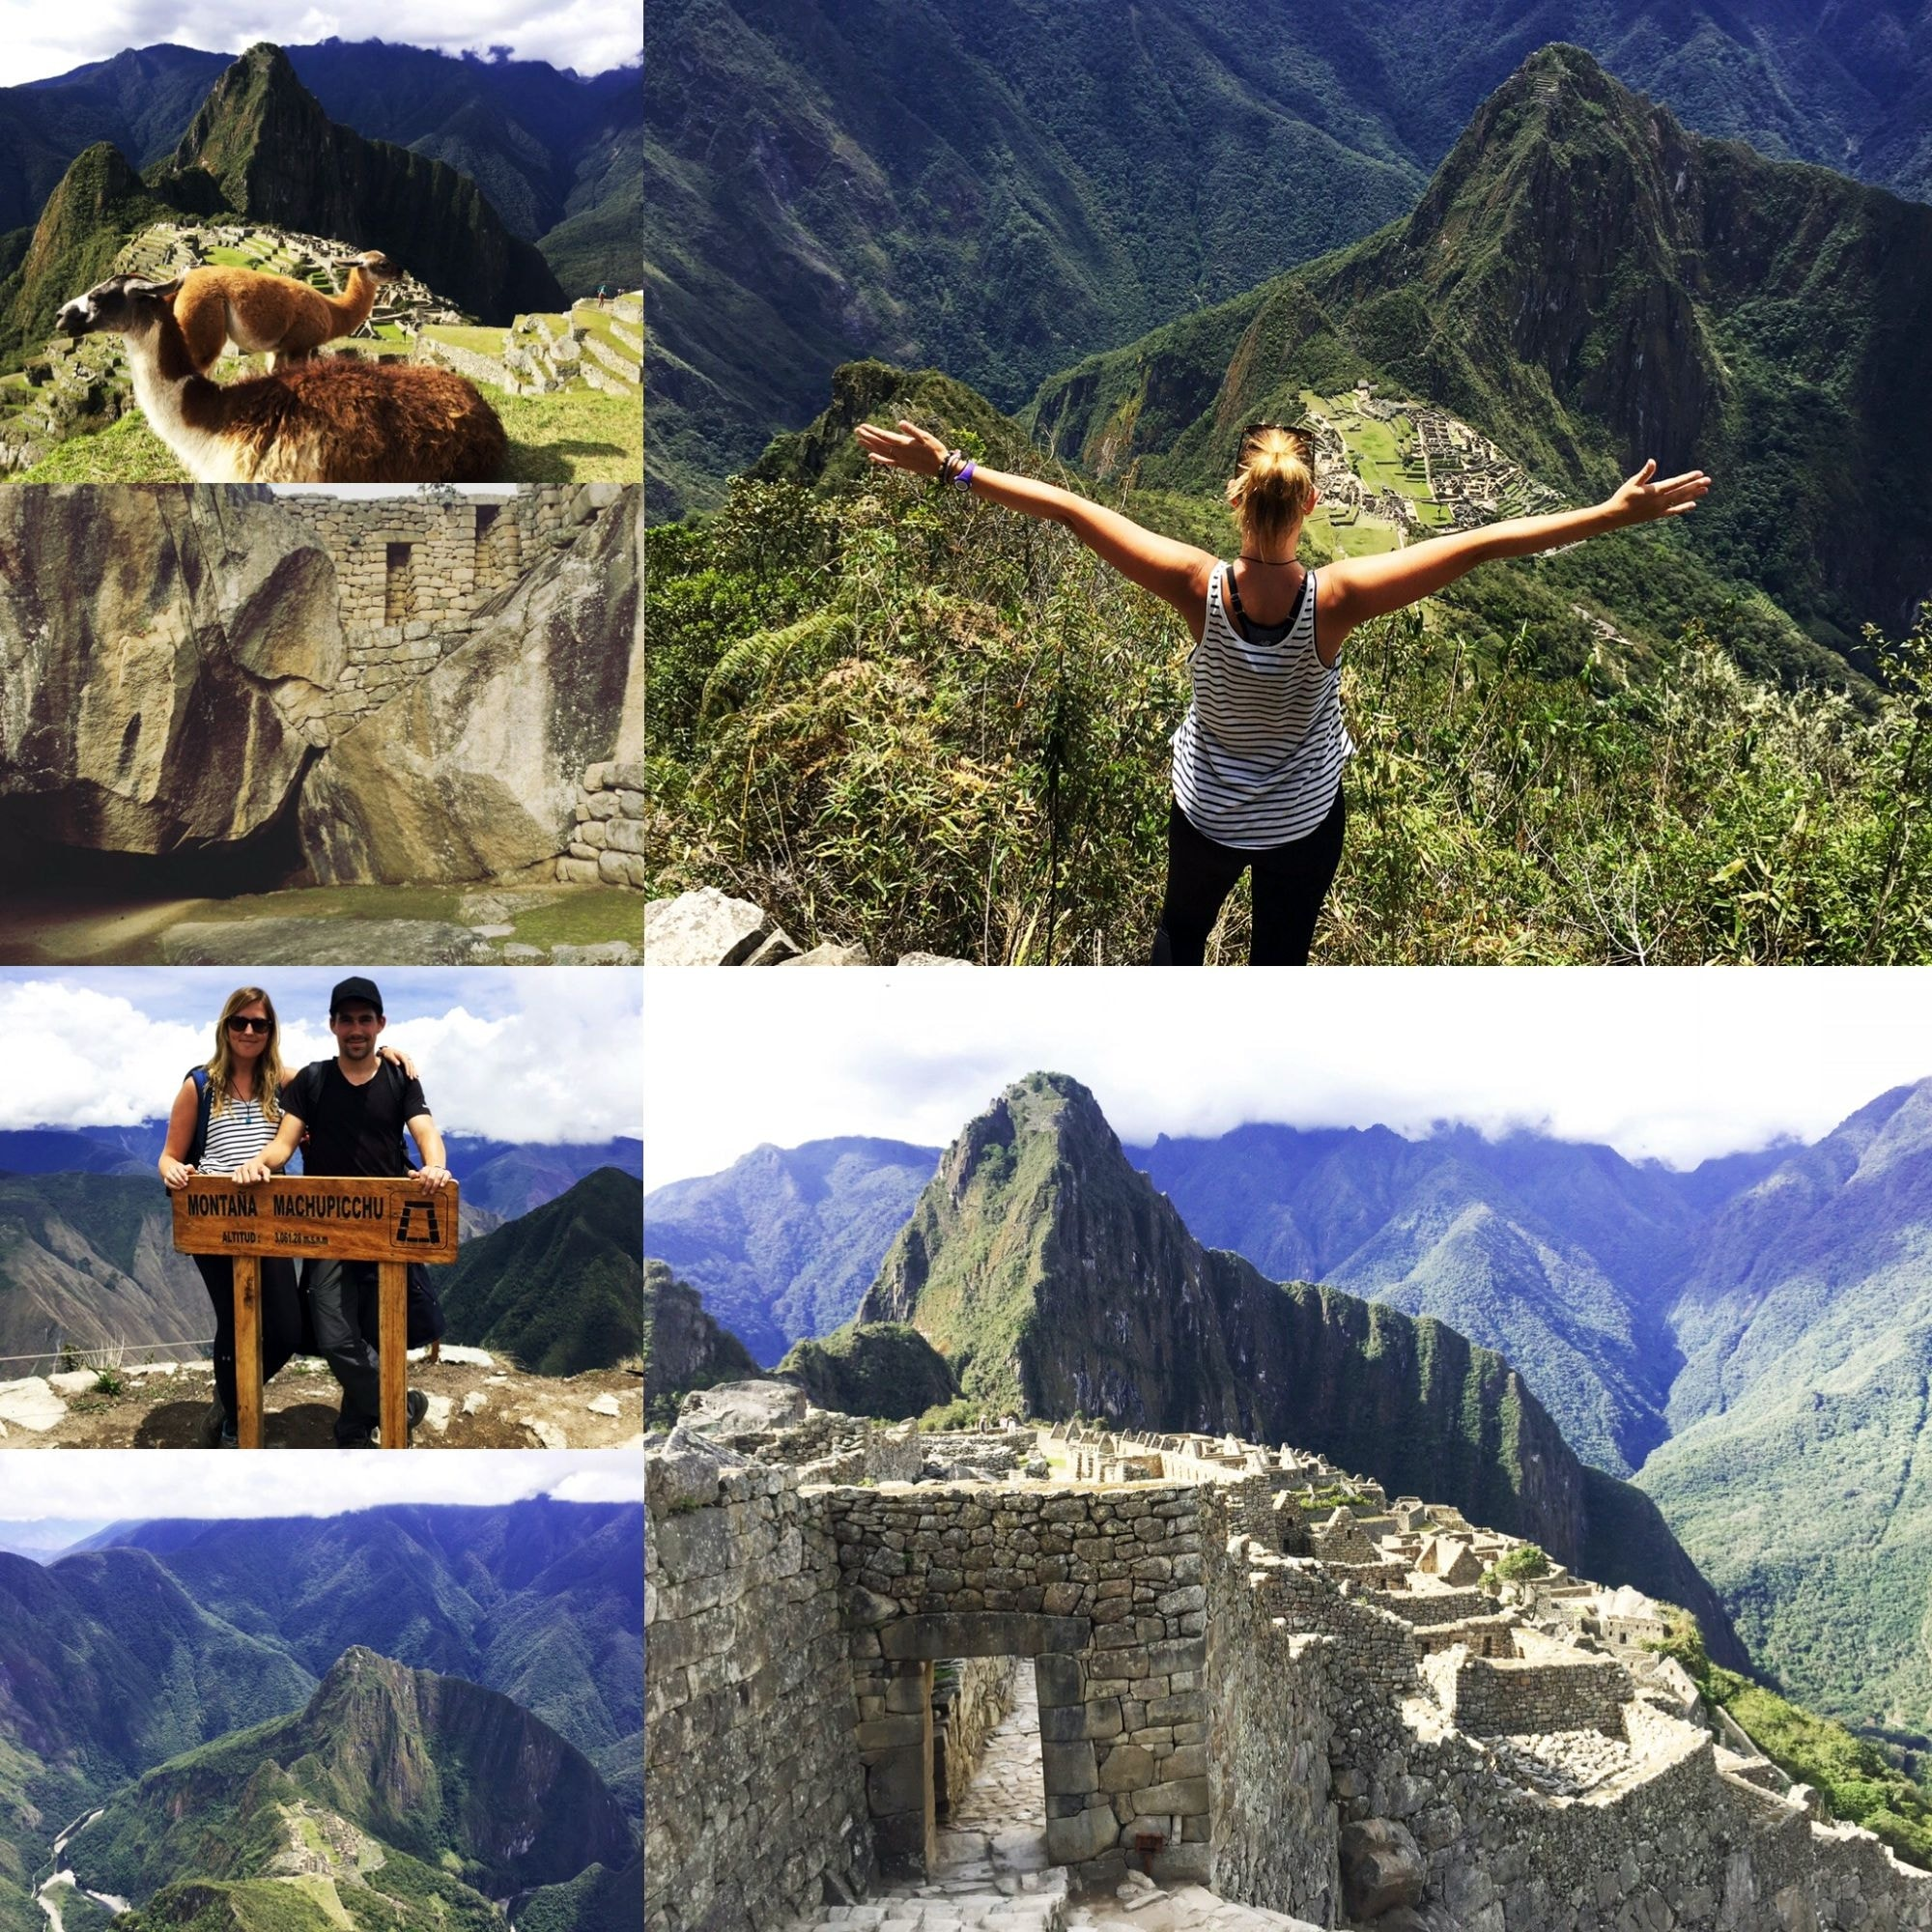 A Wonderful day at Machu Picchu, a must-see on any South America Itinerary